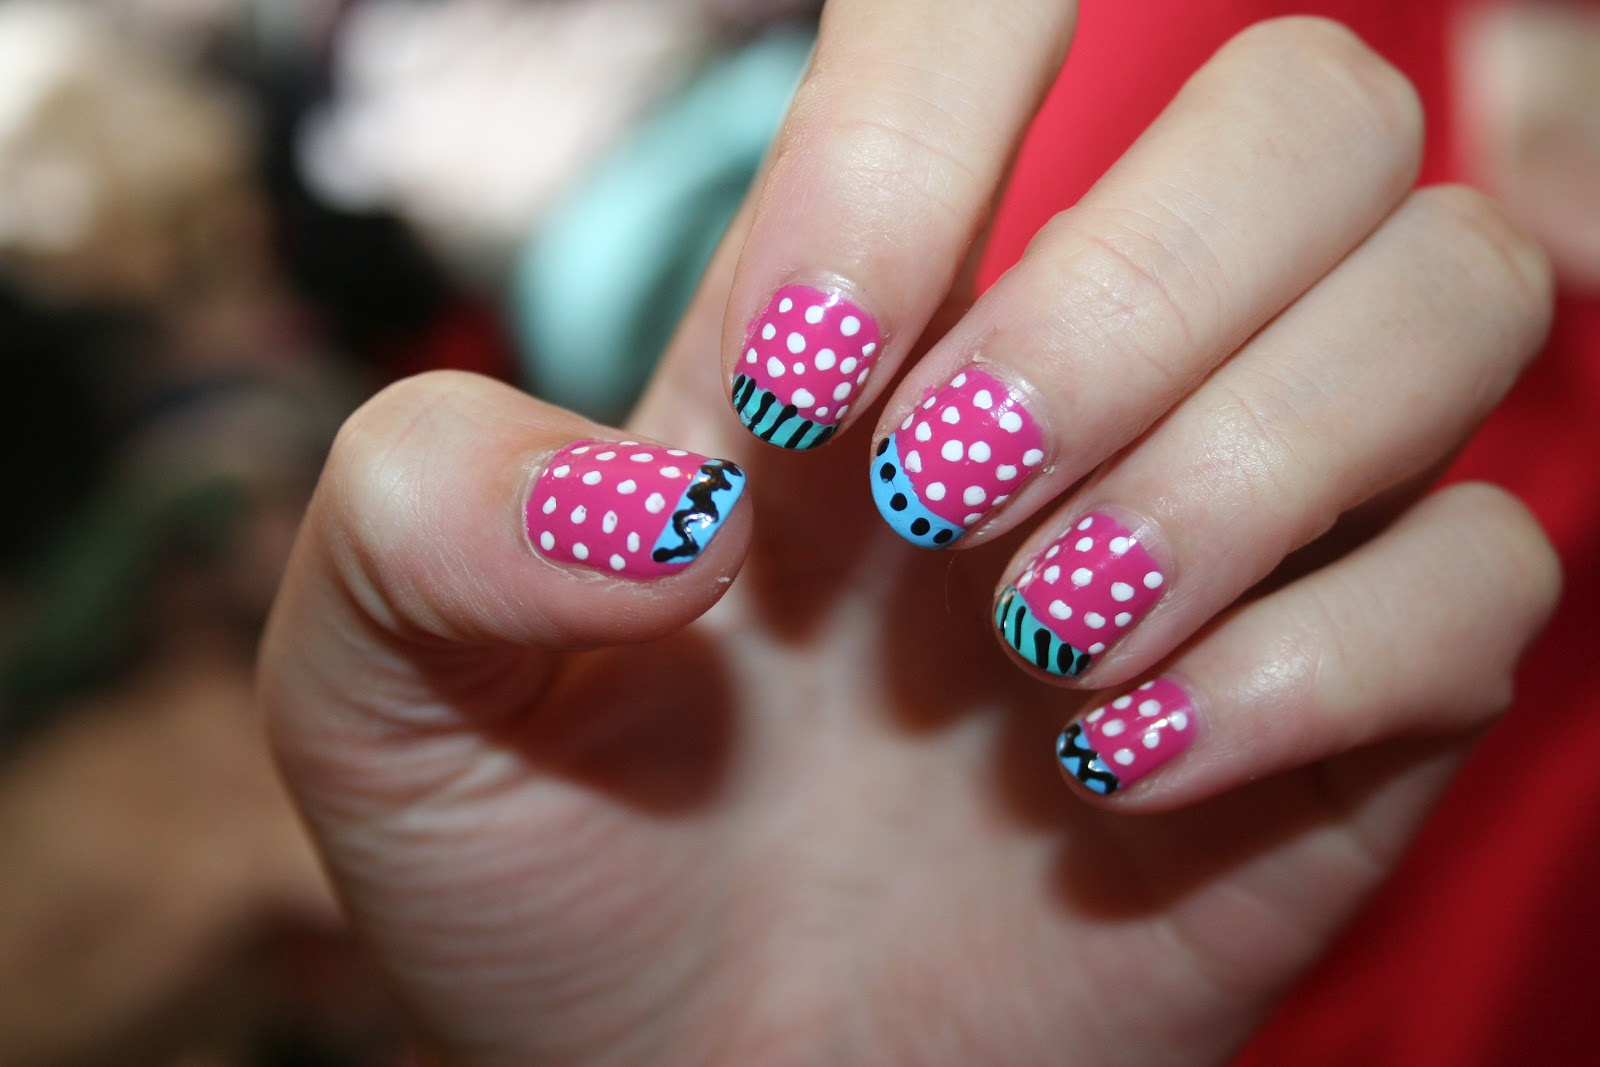 Handee Nail Tips Pop Art Nails